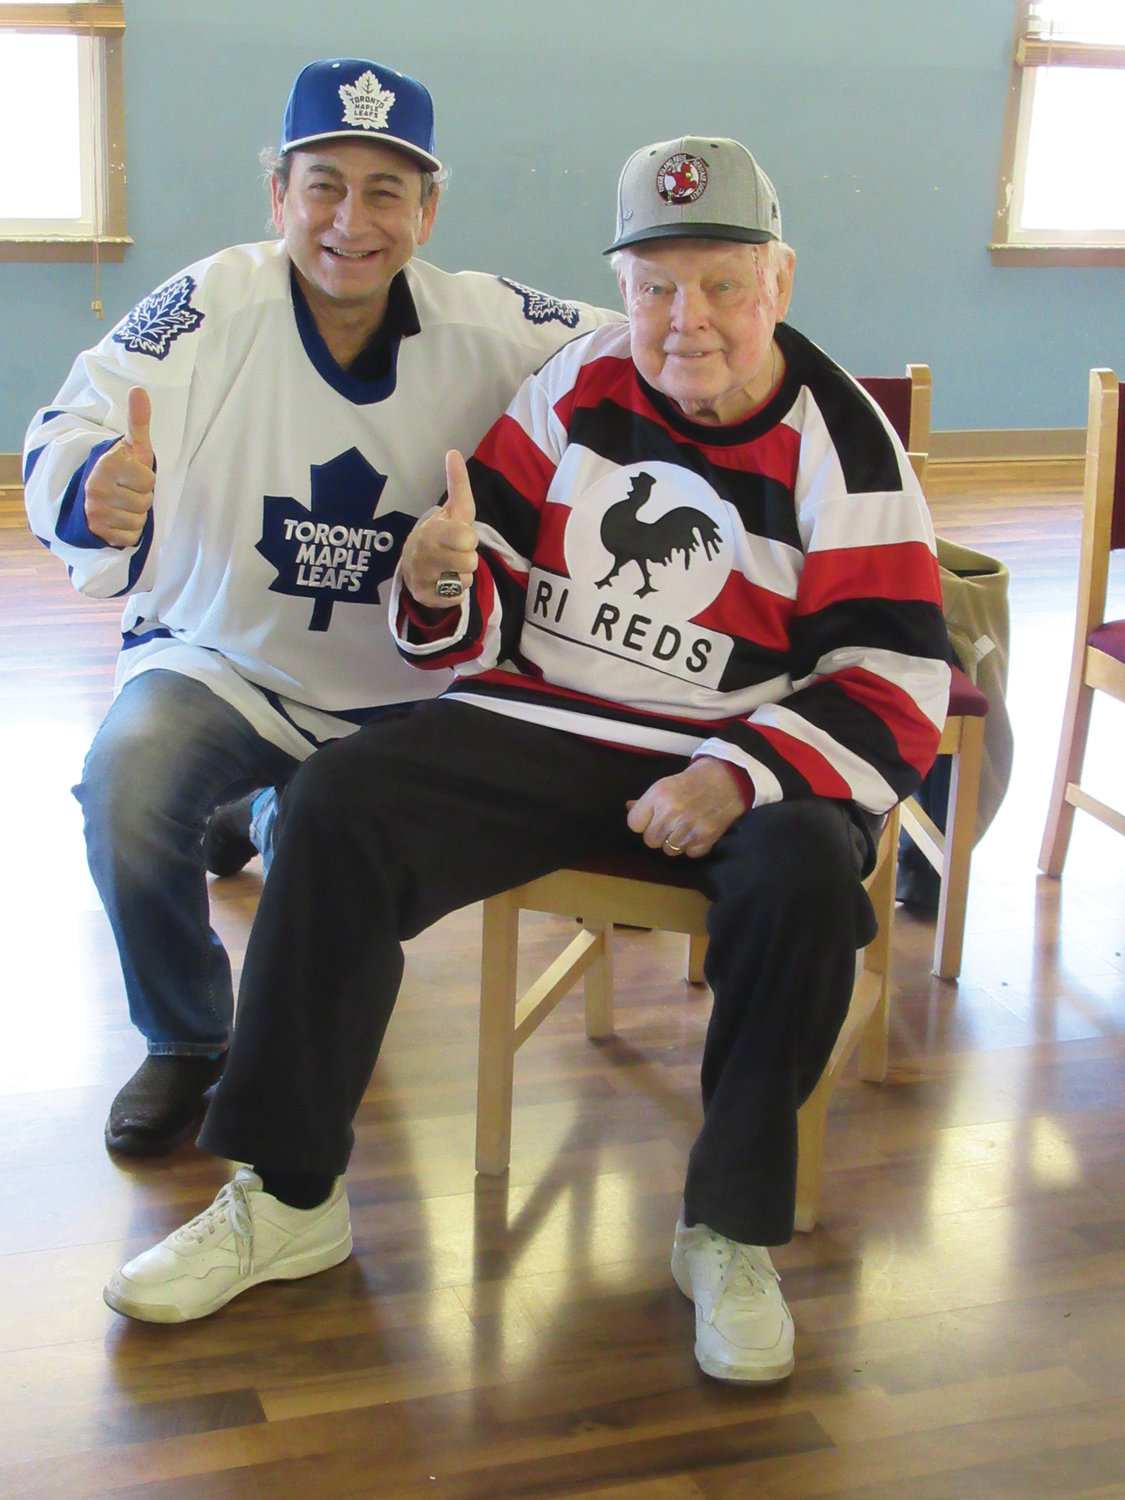 CRANSTON CORNER: Cranston resident Mike Mangasarian (left), new promoter of The 41st Super Bowl Weekend Show, is decked out in his old-time Toronto Maple Leafs garb as he joins legendary show founder Tom McDonough, now 80, who back in 1976 founded what developed into one of the longest running shows in the nation.